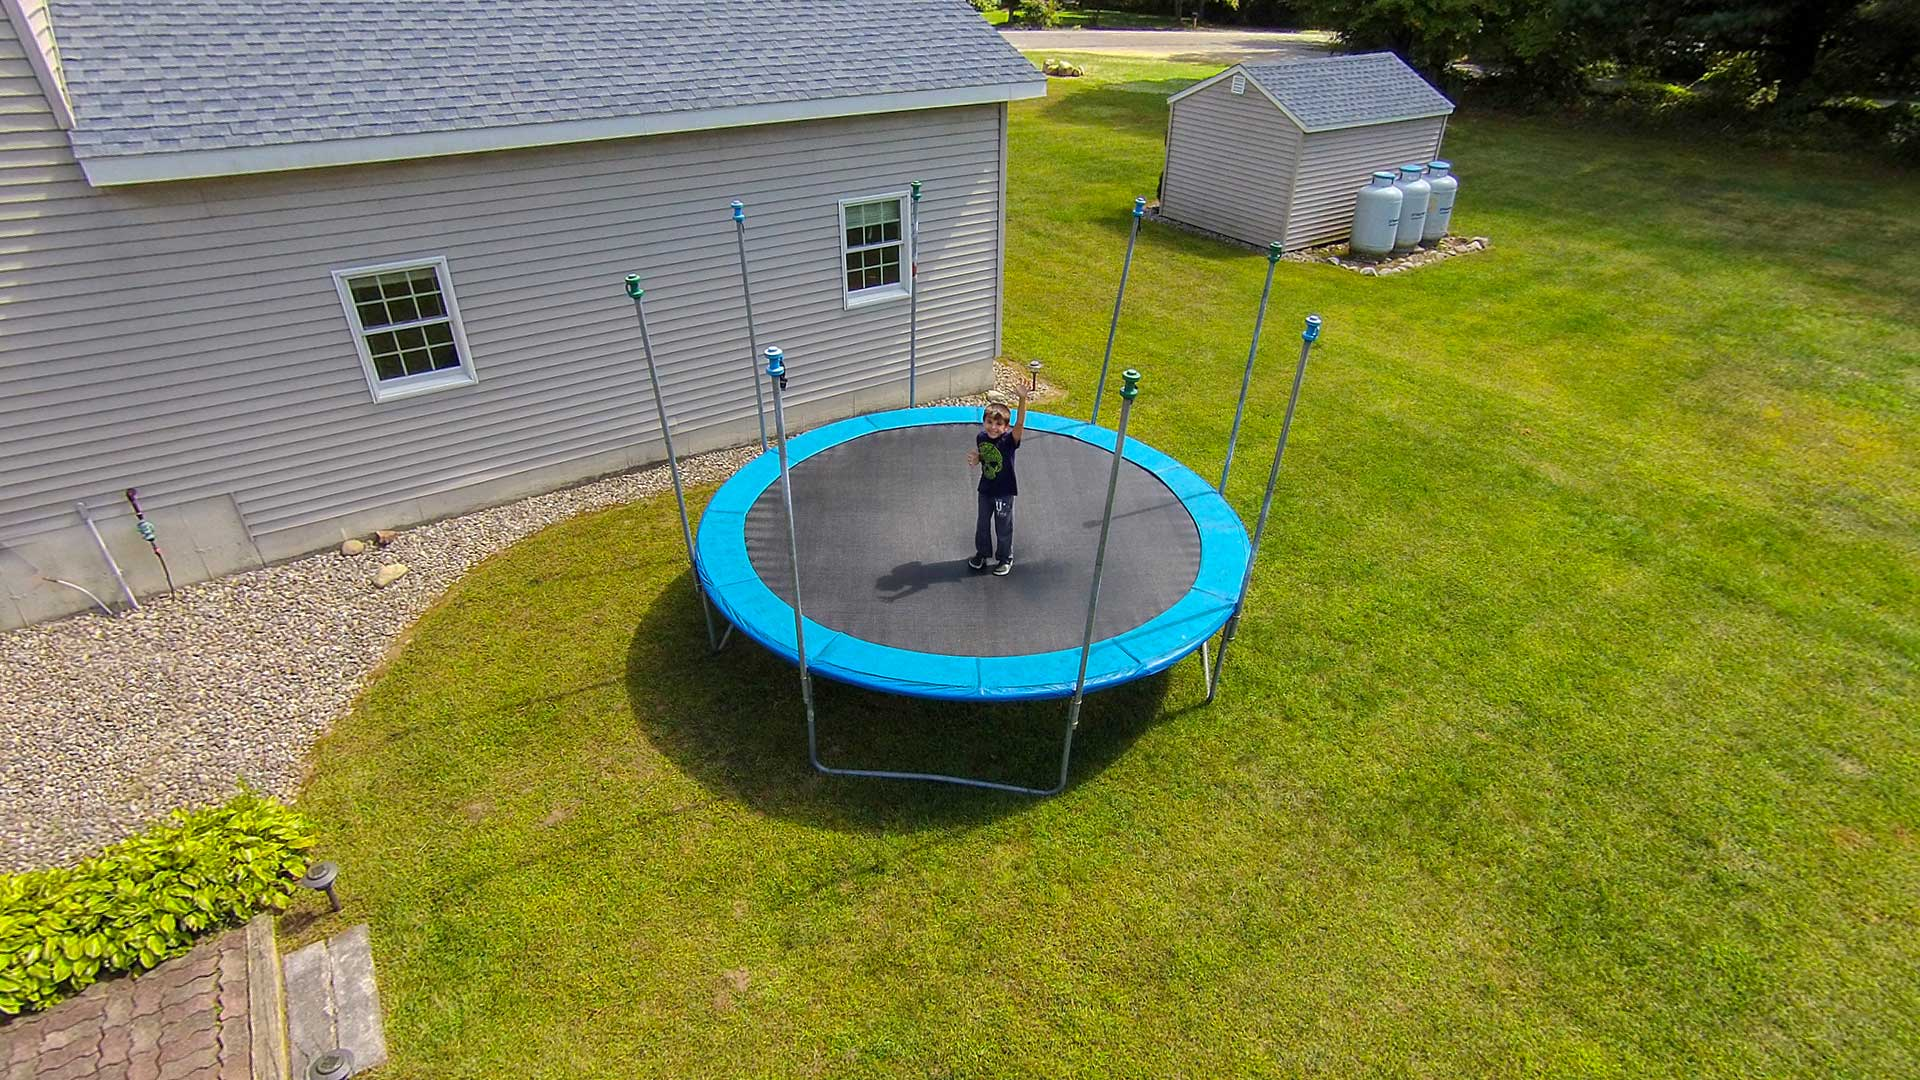 Aerial photo of young boy jumping on trampoline in backyard.